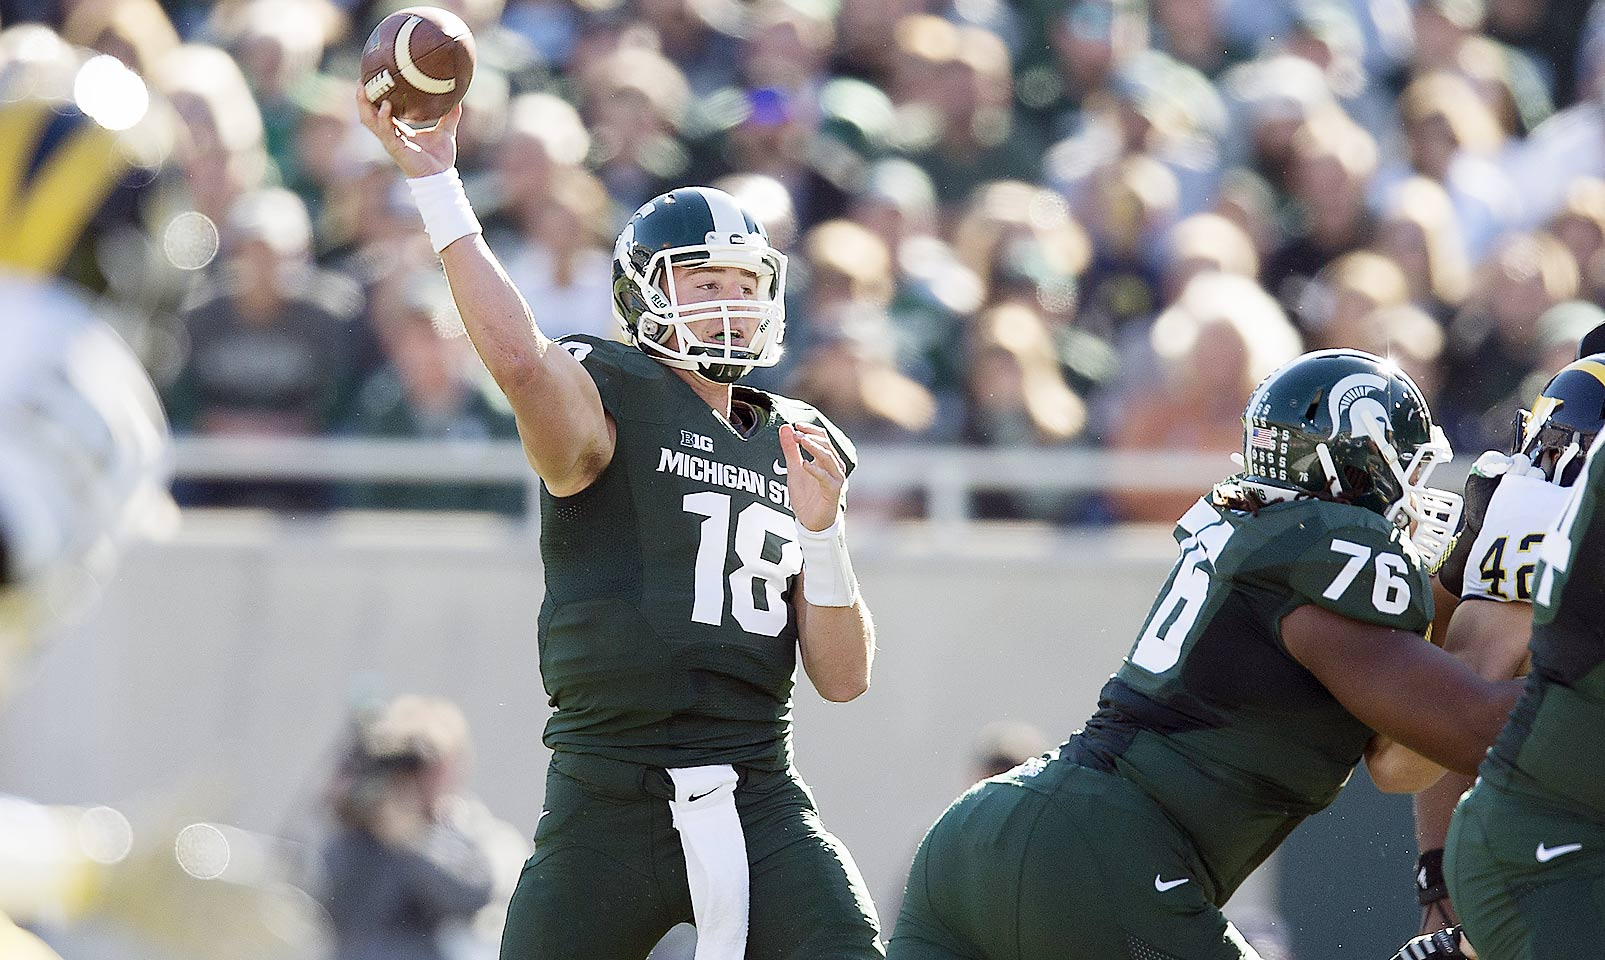 Cook has helped the Spartans go 23-3 over the last two season, including wins in the Rose Bowl and Cotton Bowl. He likely would have been the No. 3 quarterback in this year's draft class. Instead Cook's return to East Lansing makes Michigan State the biggest threat to Ohio State for the Big Ten title.